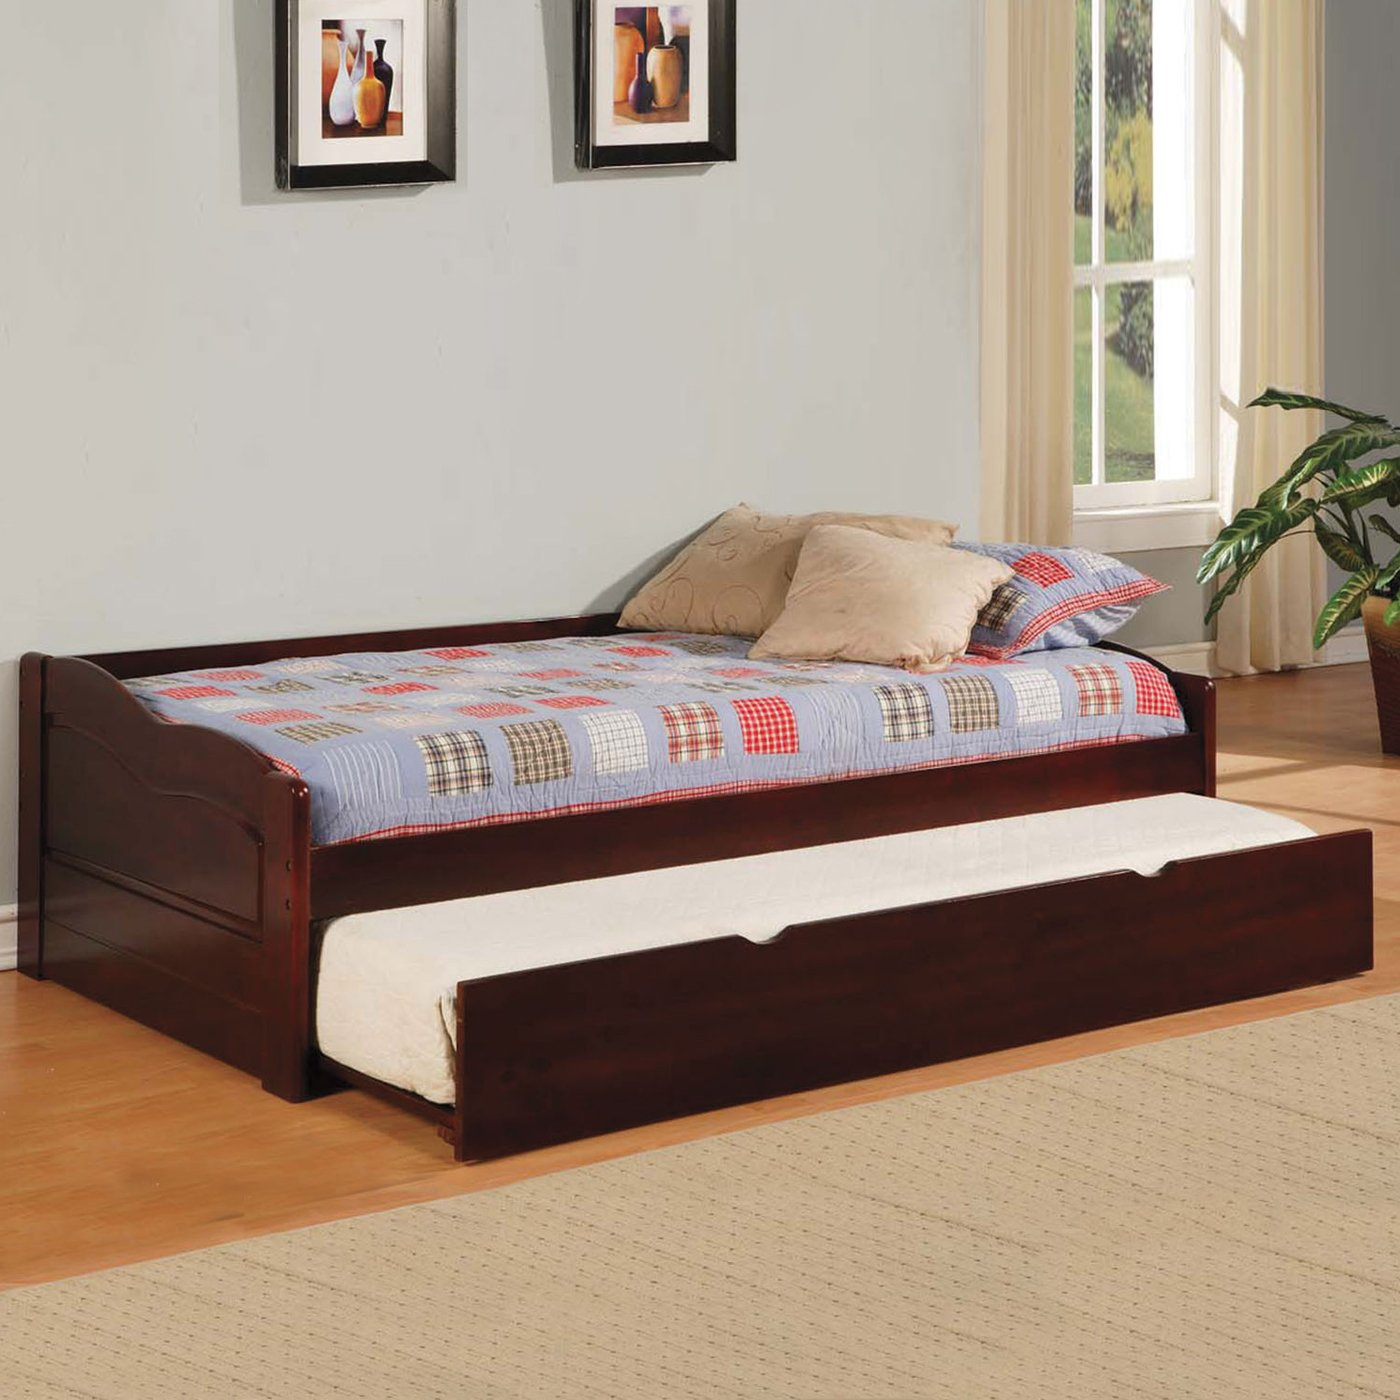 Daybed Trundle IKEA A Multiple Purpose Furniture